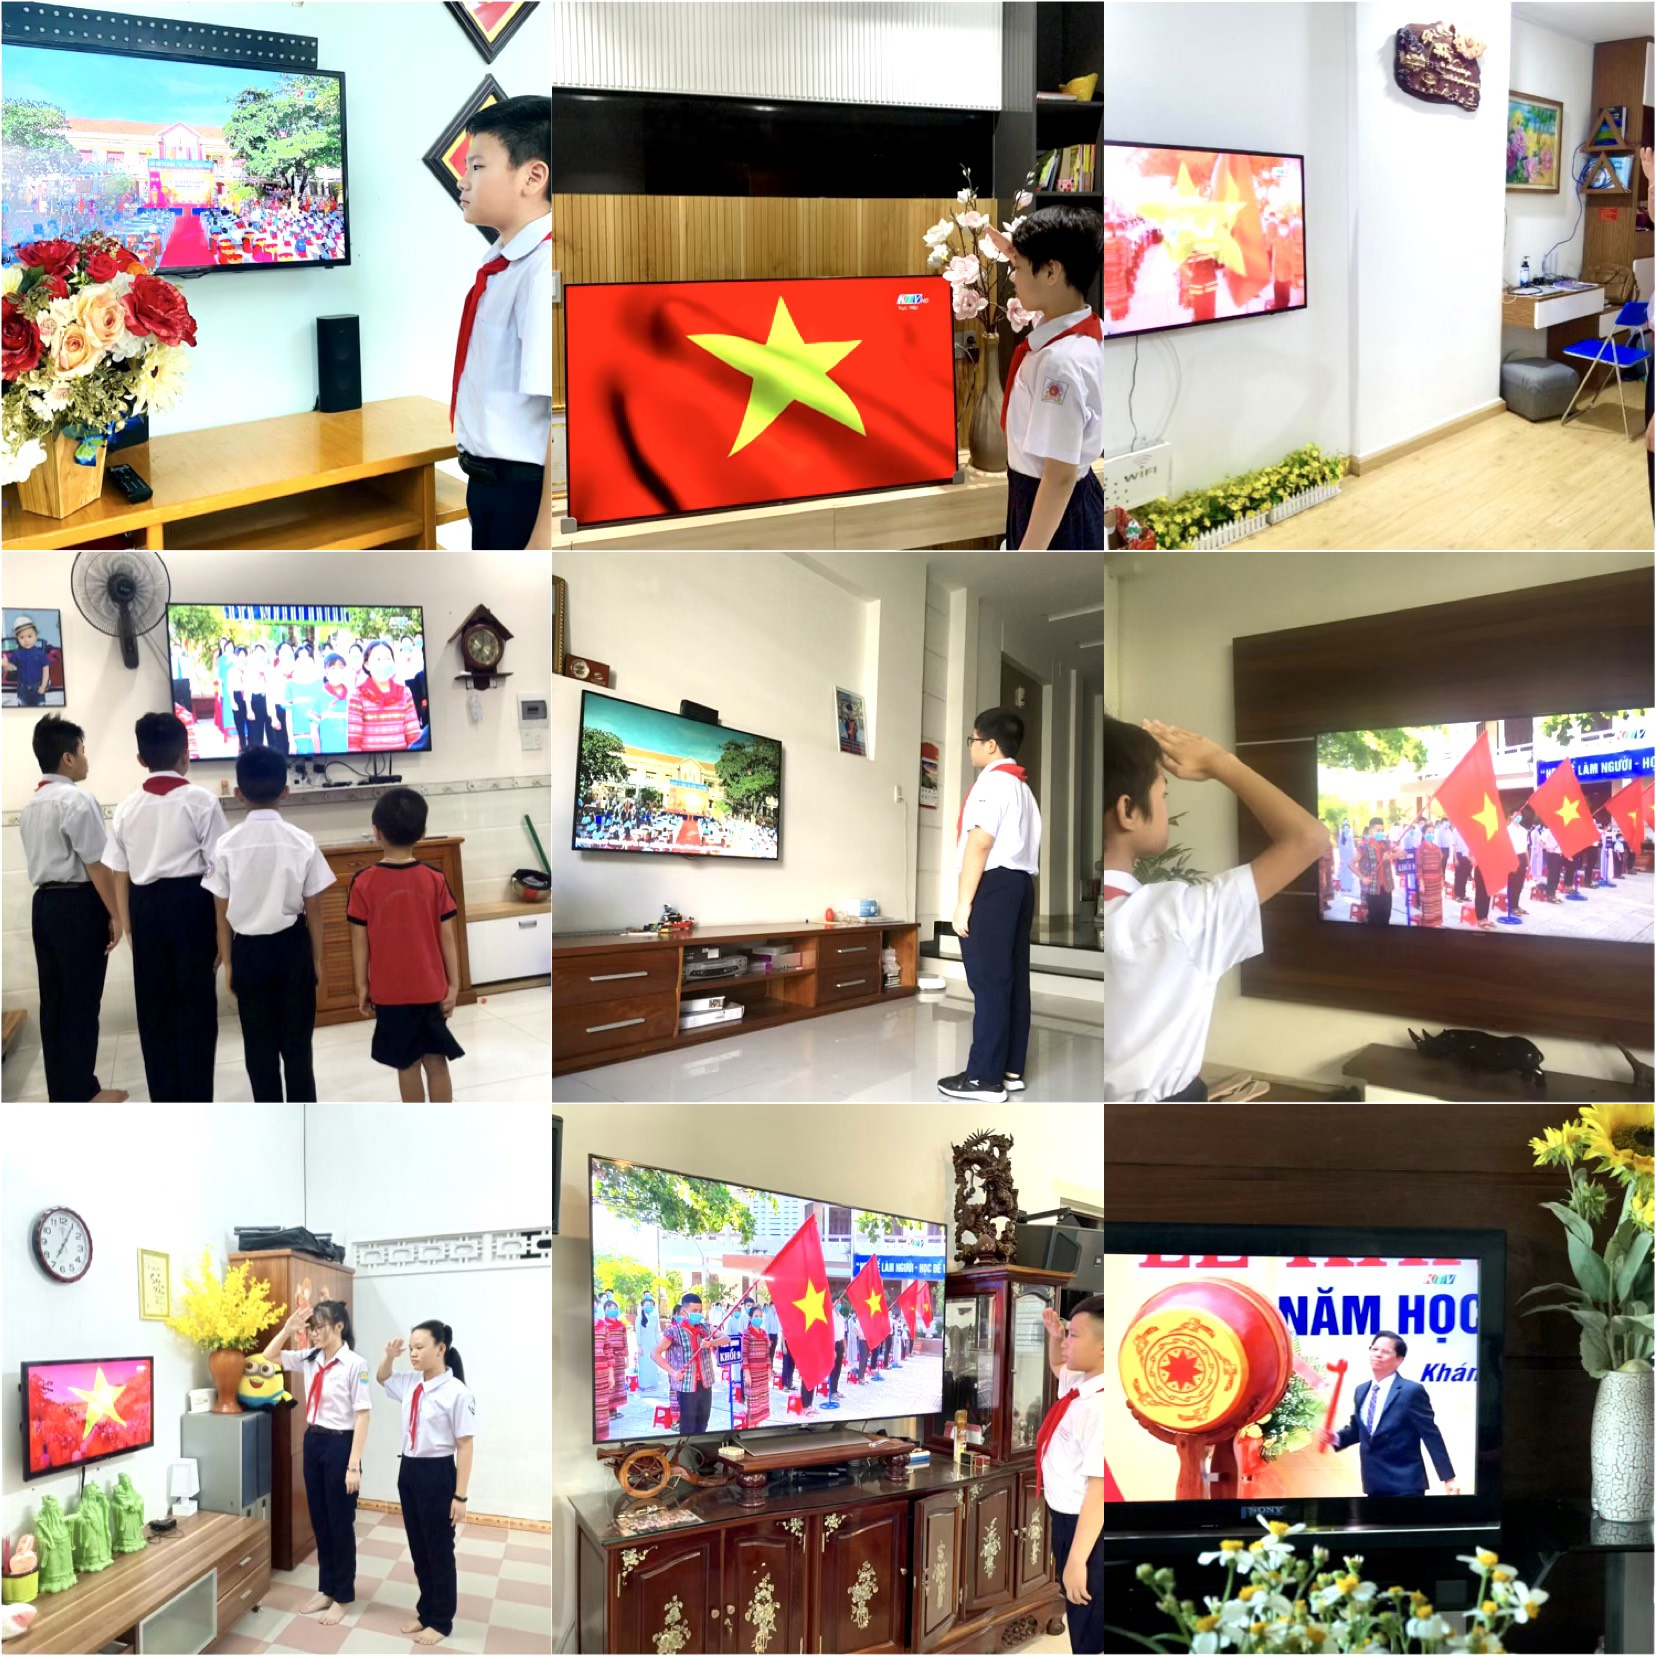 Students of Nguyen Hien Junior High School attending opening ceremony via television (Photo: Hong Minh)